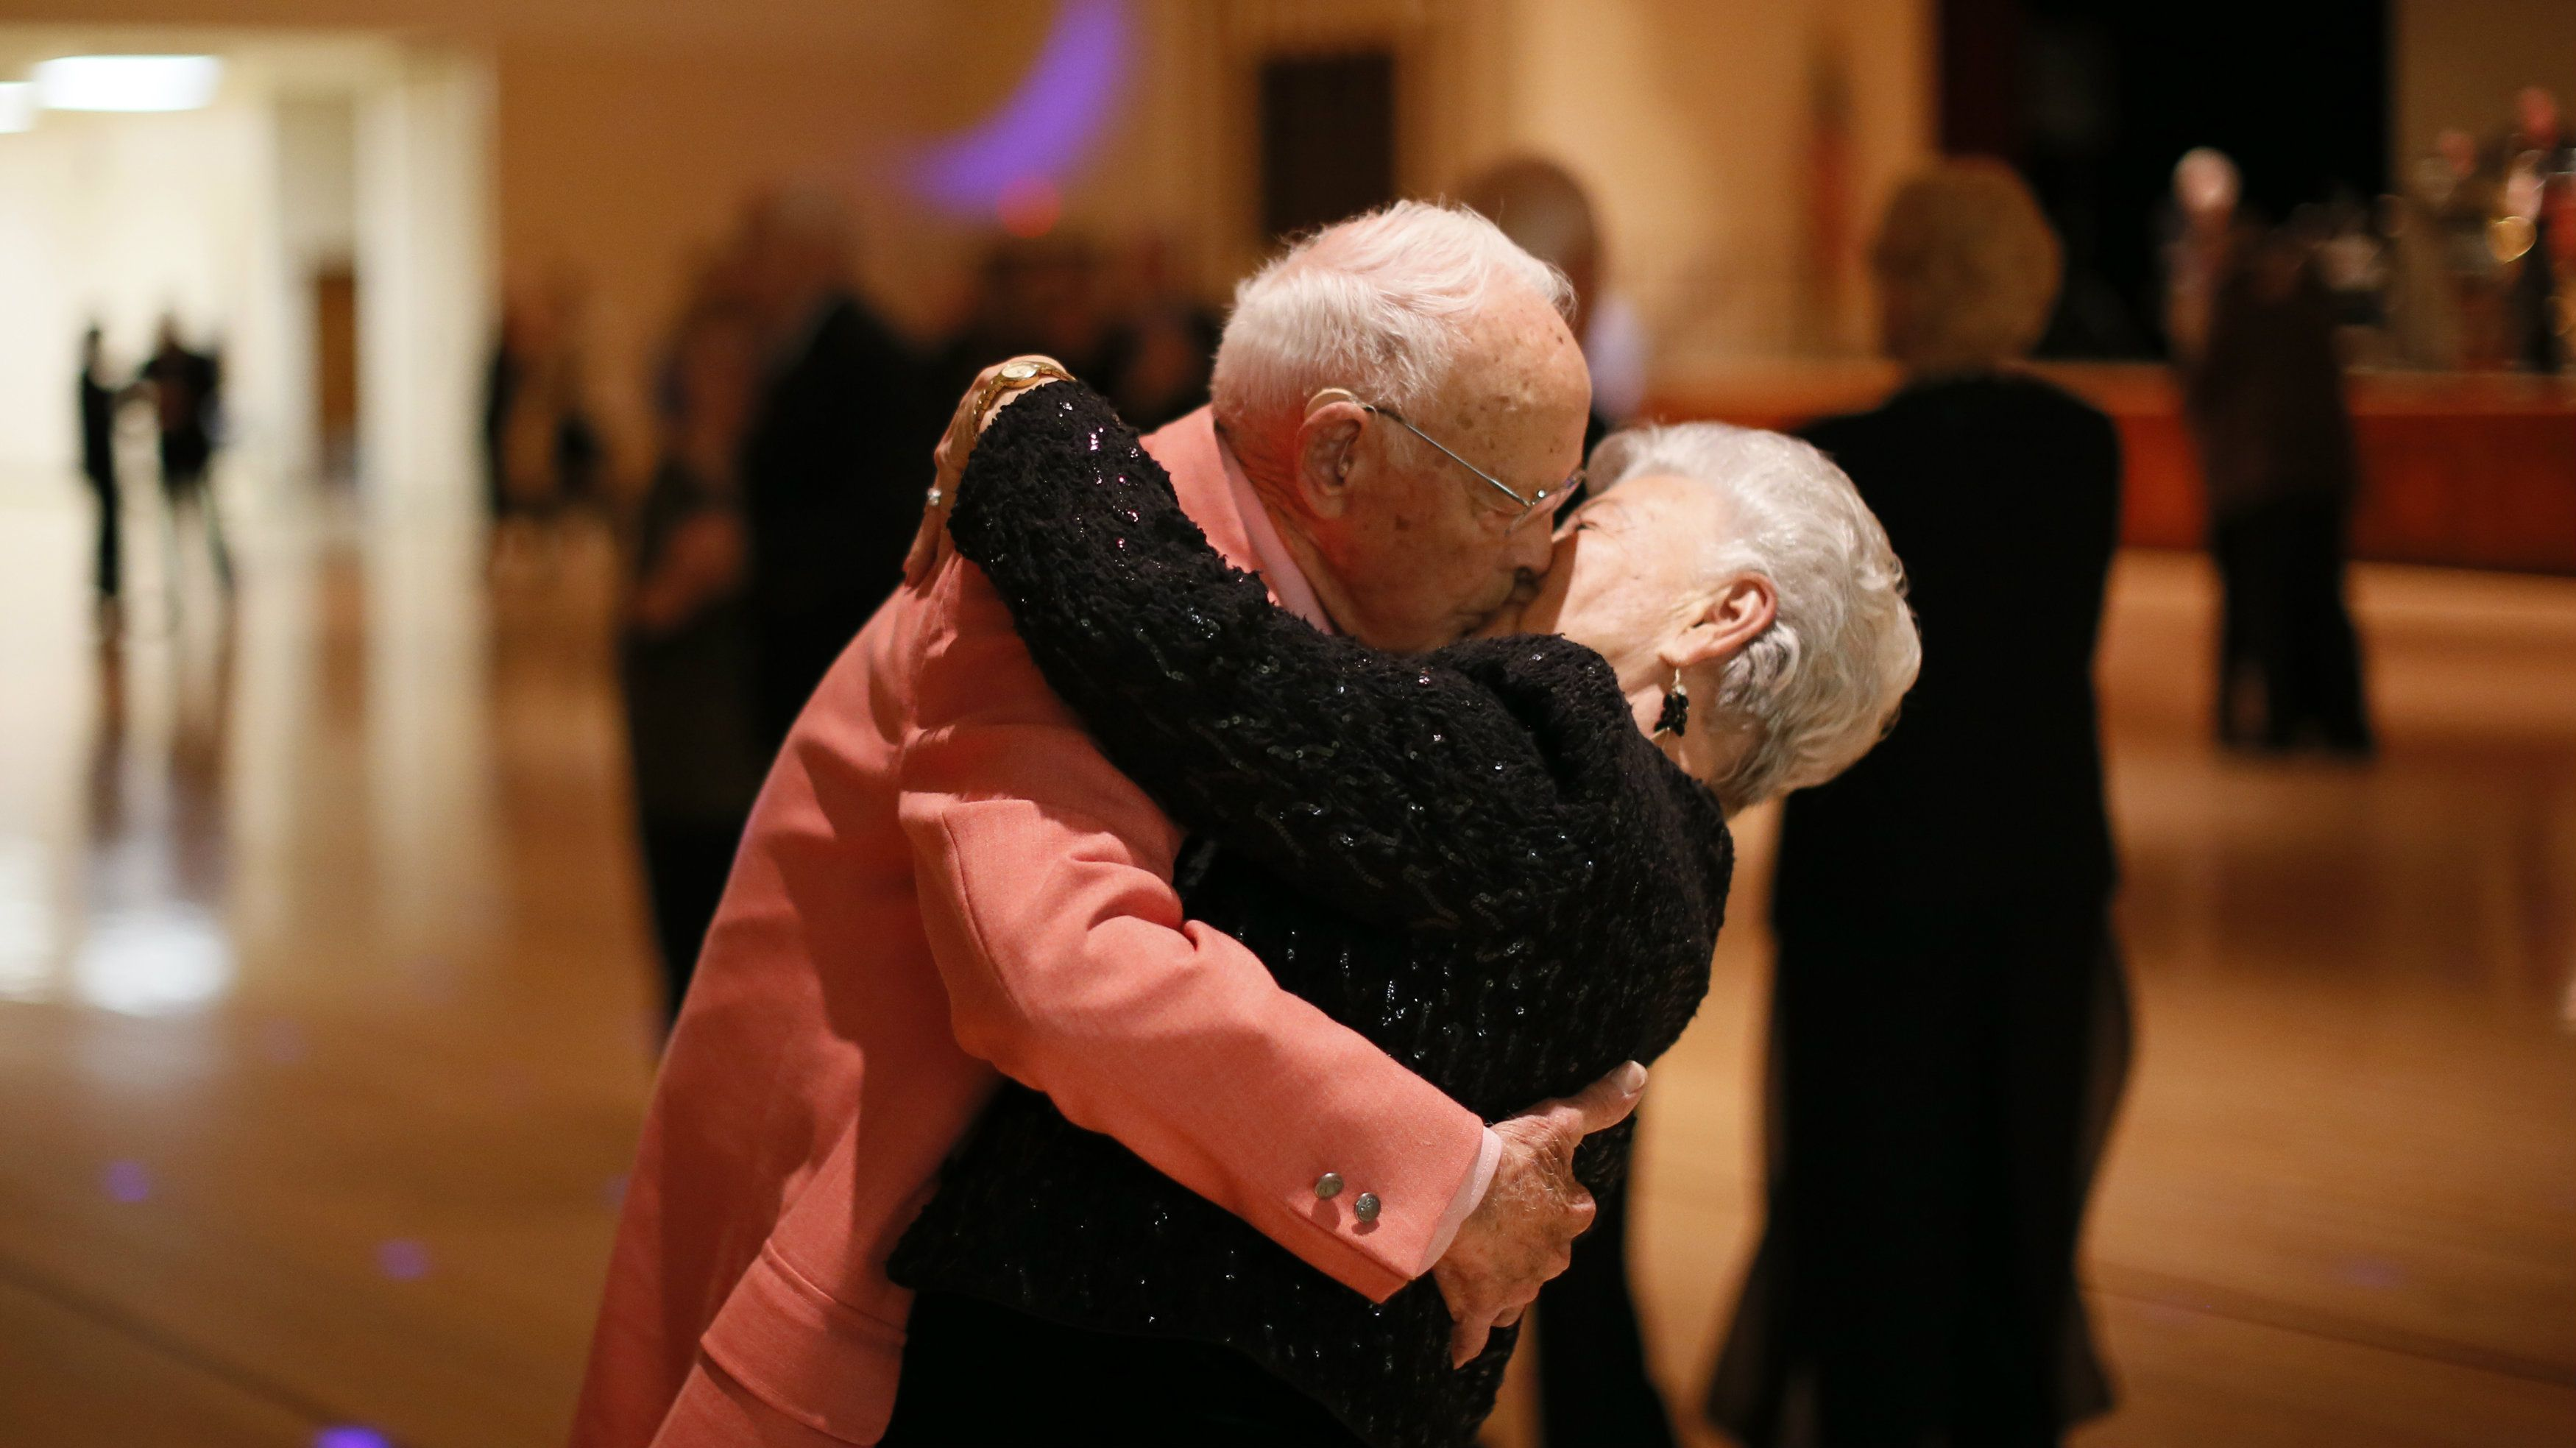 Donald Smitherman, 98, kisses his mother Marlene during a finish of a dance in Sun City, Arizona, Jan 5, 2013. Sun City was built in 1959 by businessman Del Webb as America?s initial active retirement village for a over-55's. Del Webb likely that retirees would group to a village where they were given some-more than only a residence with a rocking chair in that to lay and wait to die. Today?s residents keep their minds and bodies active by socializing during over 120 clubs with activities such as block dancing, ceramics, drum skating, computers, cheerleading, racquetball and yoga. There are 38,500 residents in a village with an normal age 72.4 years. Picture taken Jan 5, 2013. REUTERS/Lucy Nicholson (UNITED STATES - Tags: SOCIETY)